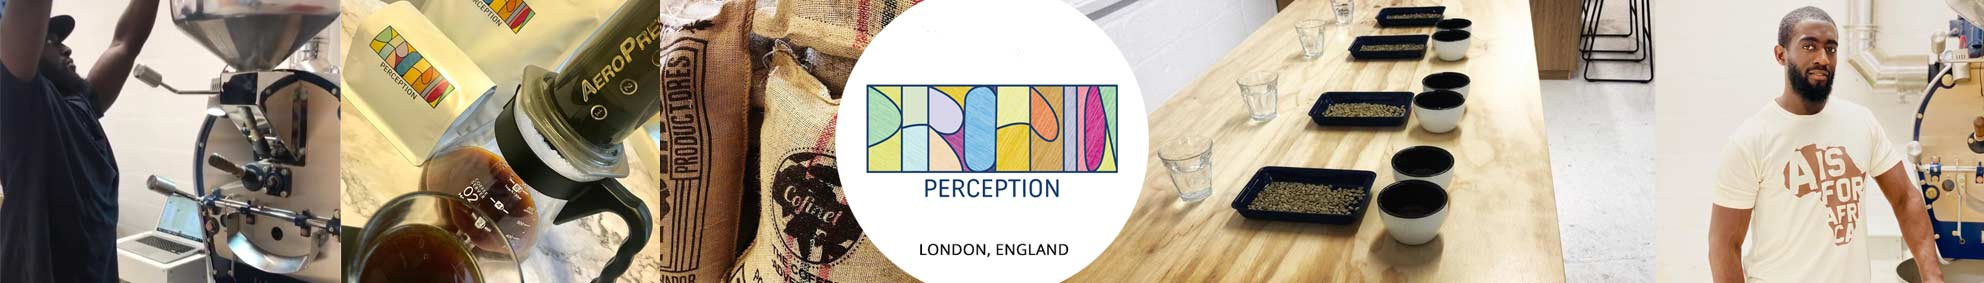 Perception Coffee Roasters opn UK Best Coffee Subscription